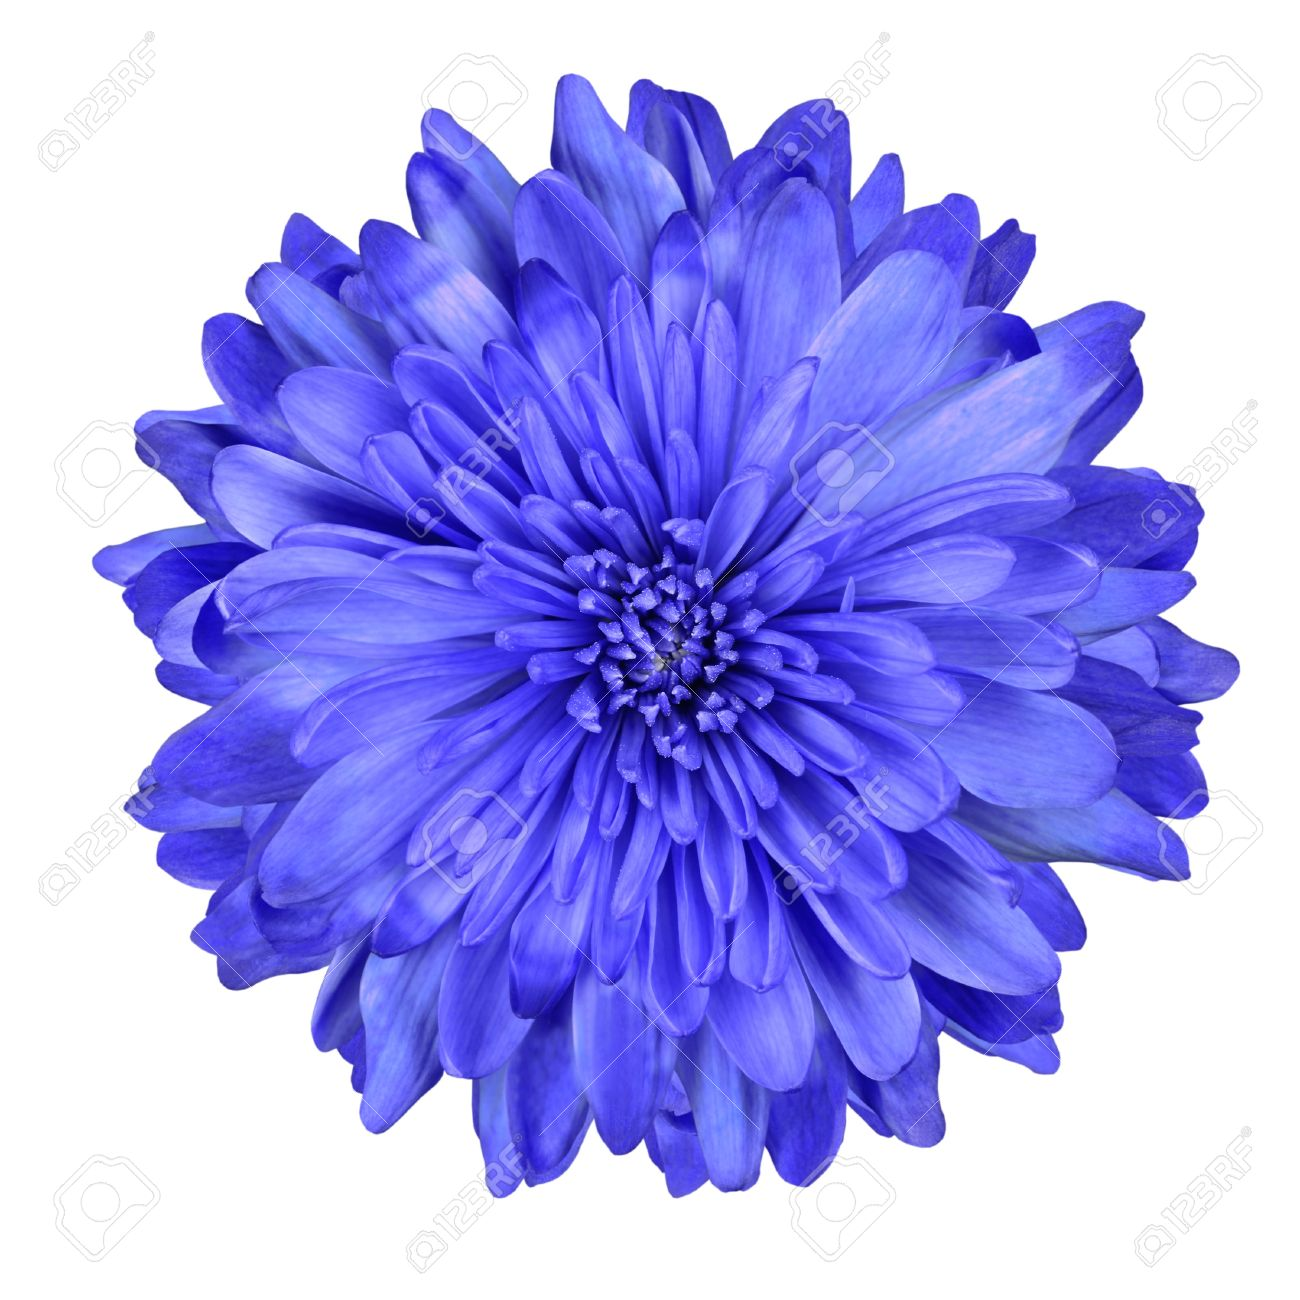 Single deep blue chrysanthemum flower isolated over white background single deep blue chrysanthemum flower isolated over white background beautiful dahlia flowerhead macro stock photo mightylinksfo